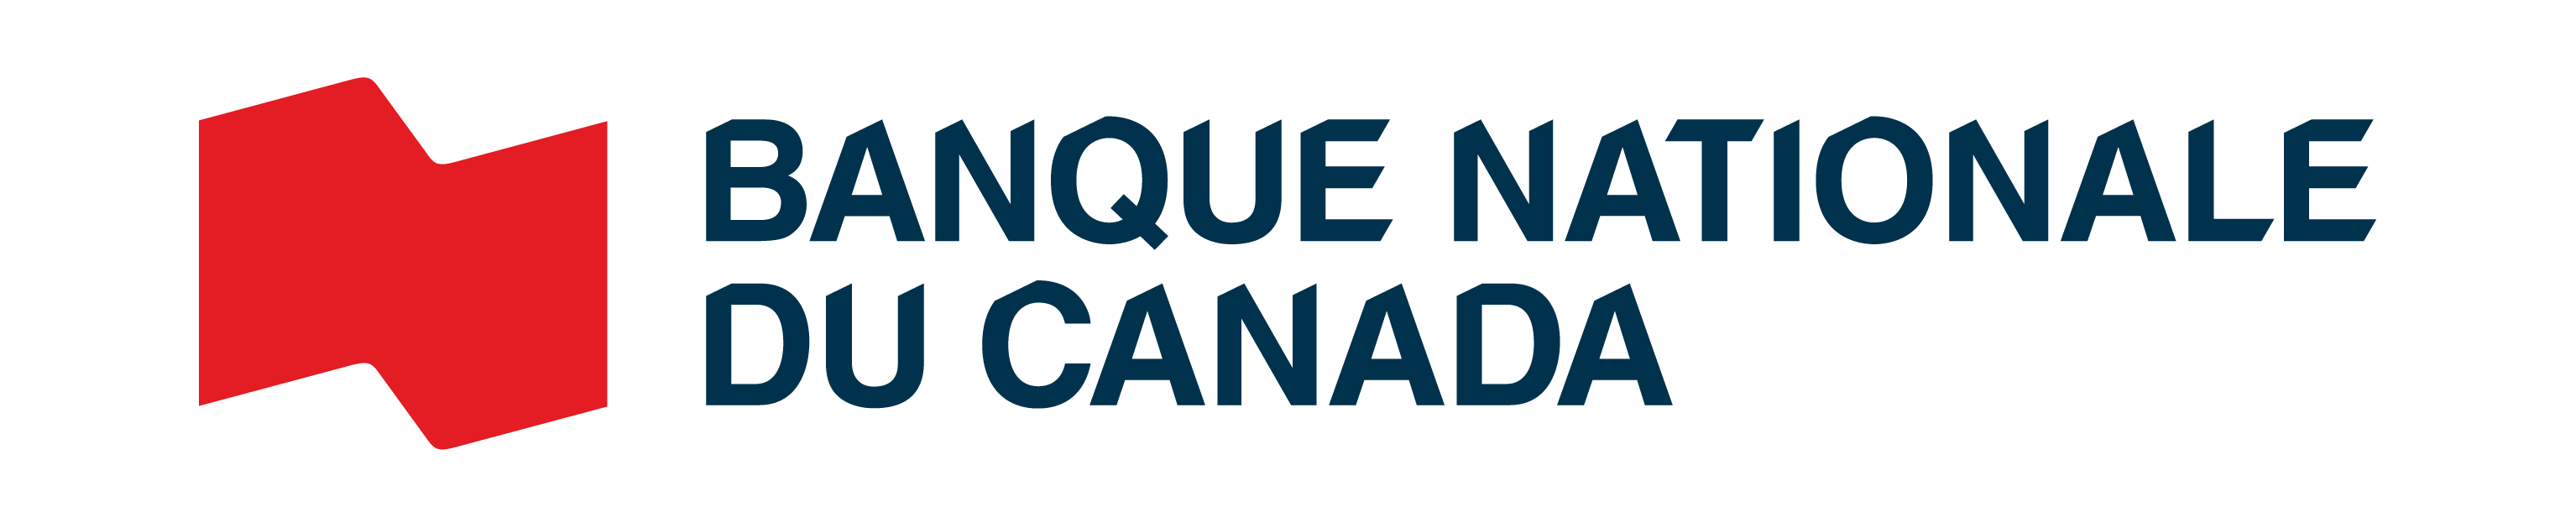 banque Nationale- logo